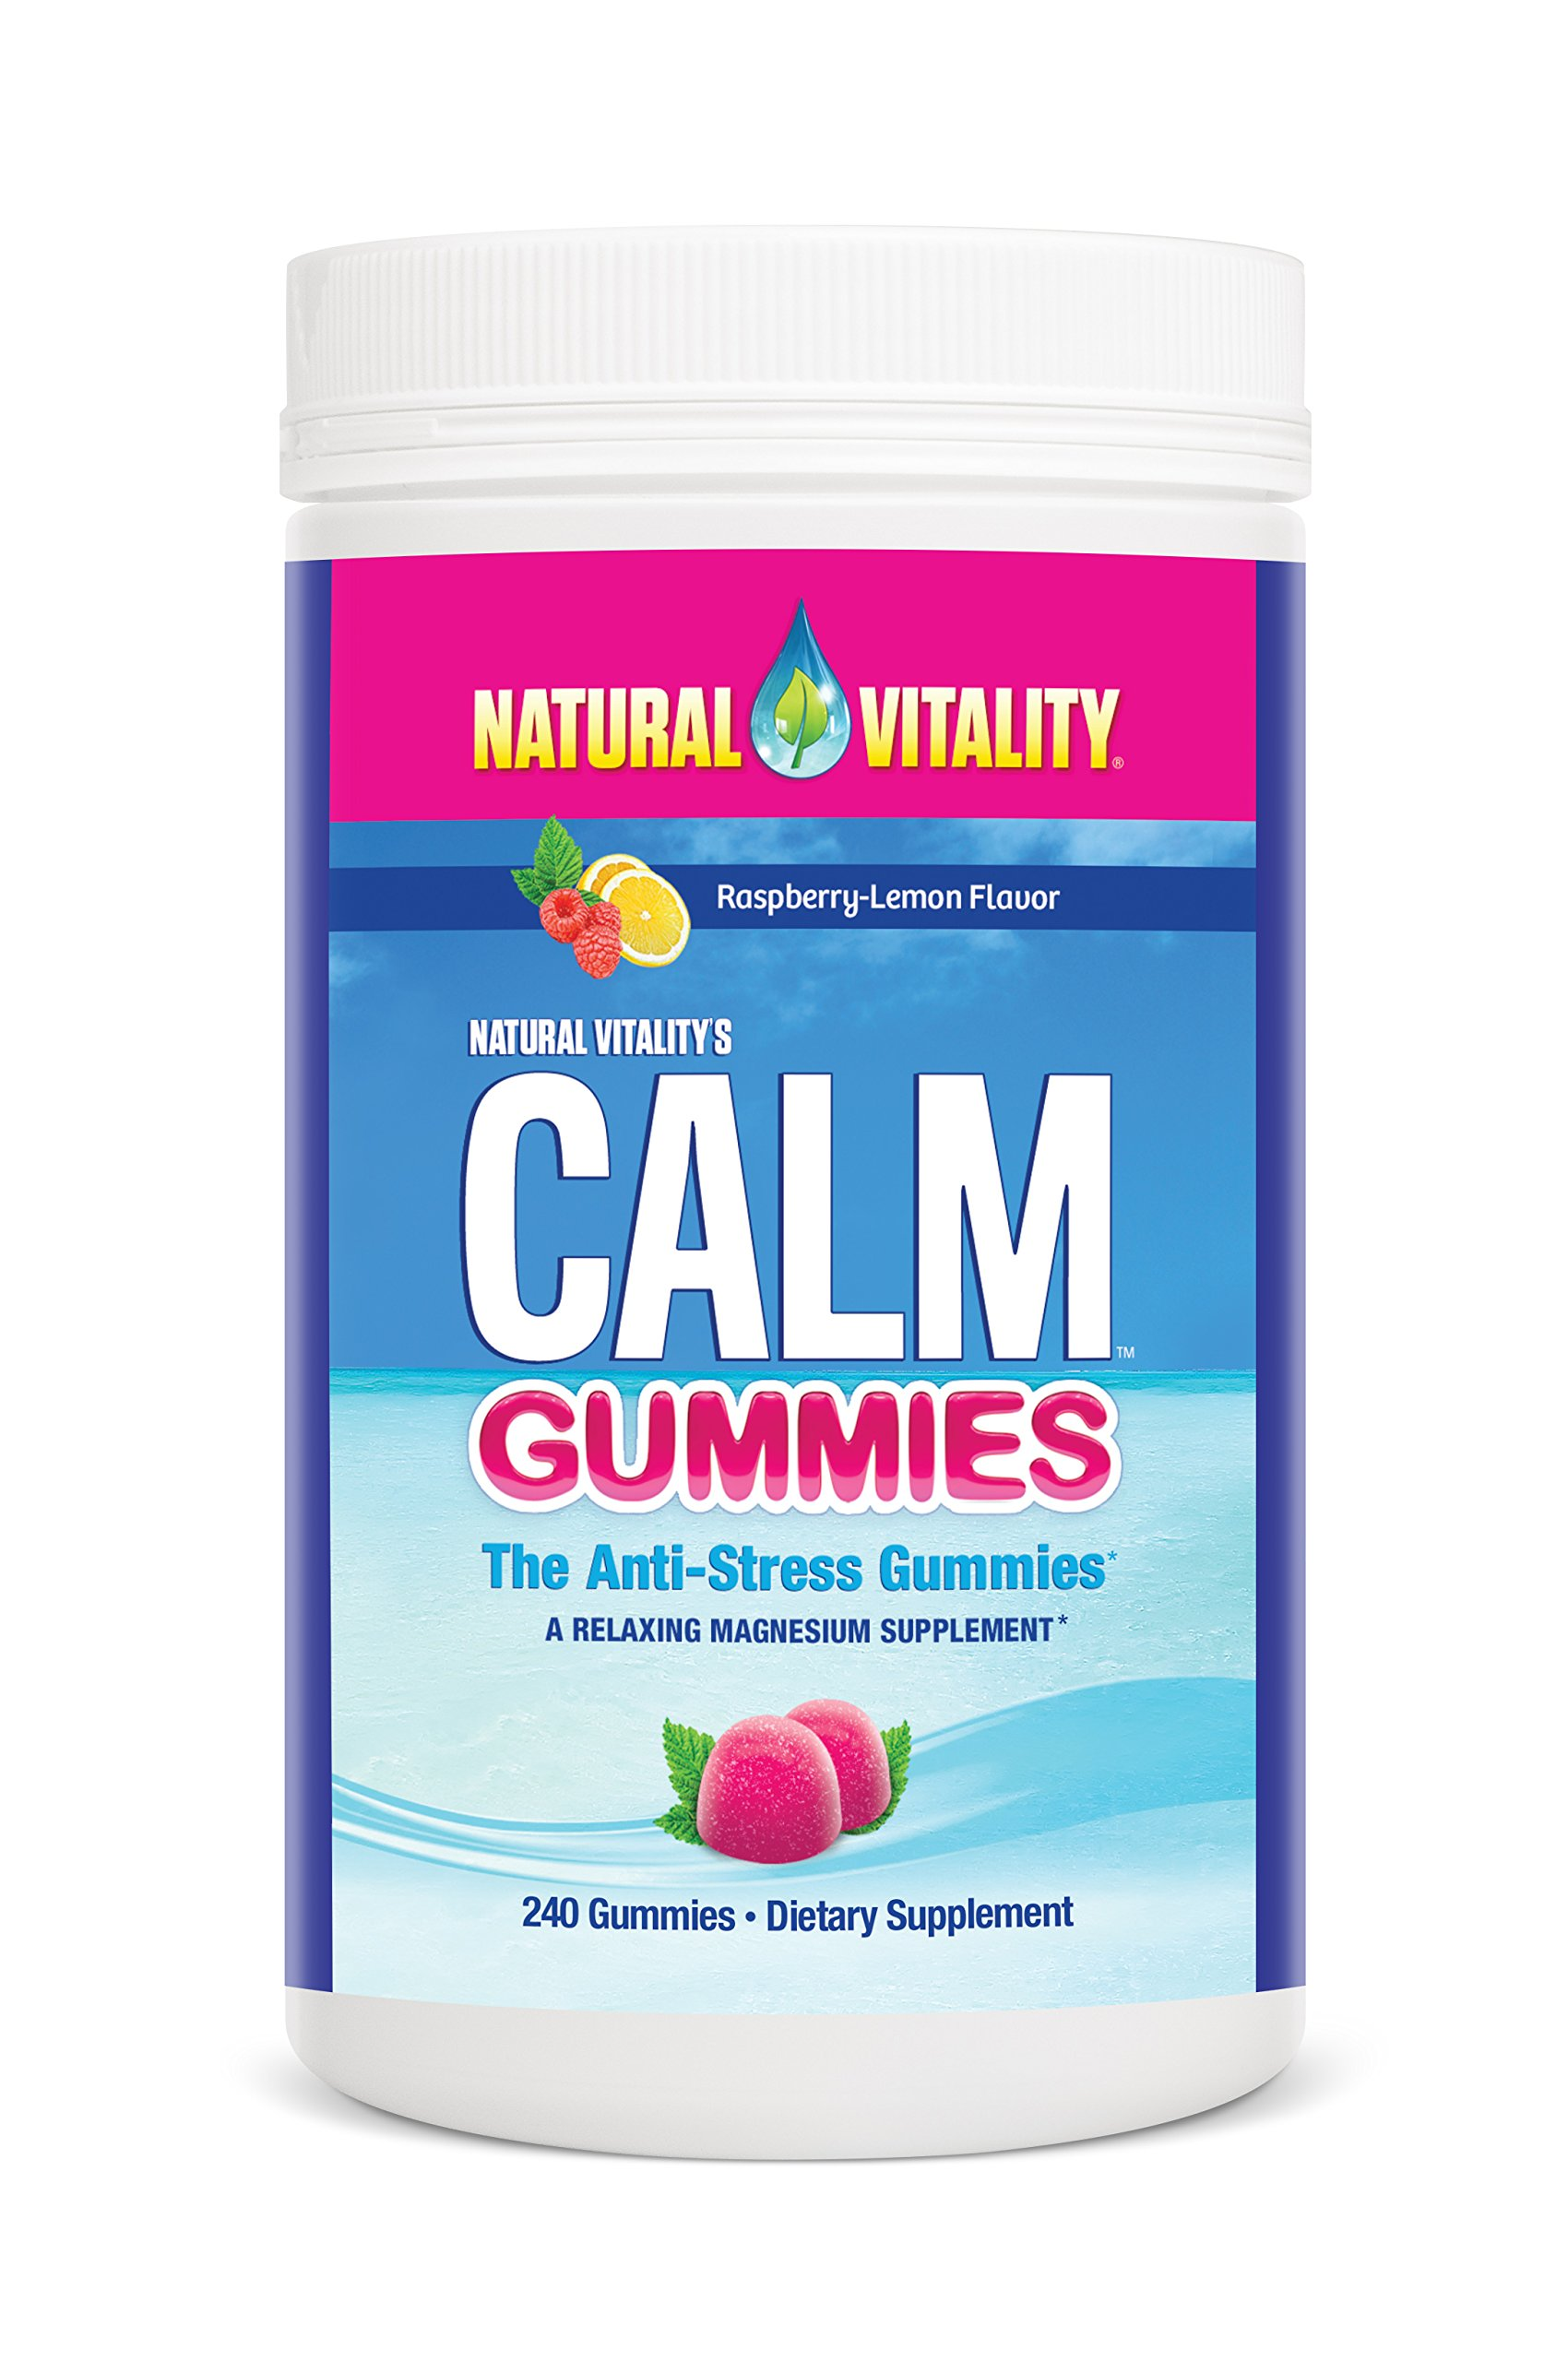 Natural Vitality CALM Gummies the Anti-Stress Gummies, A Relaxing Magnesium Supplement - 240 ct Raspberry Lemon